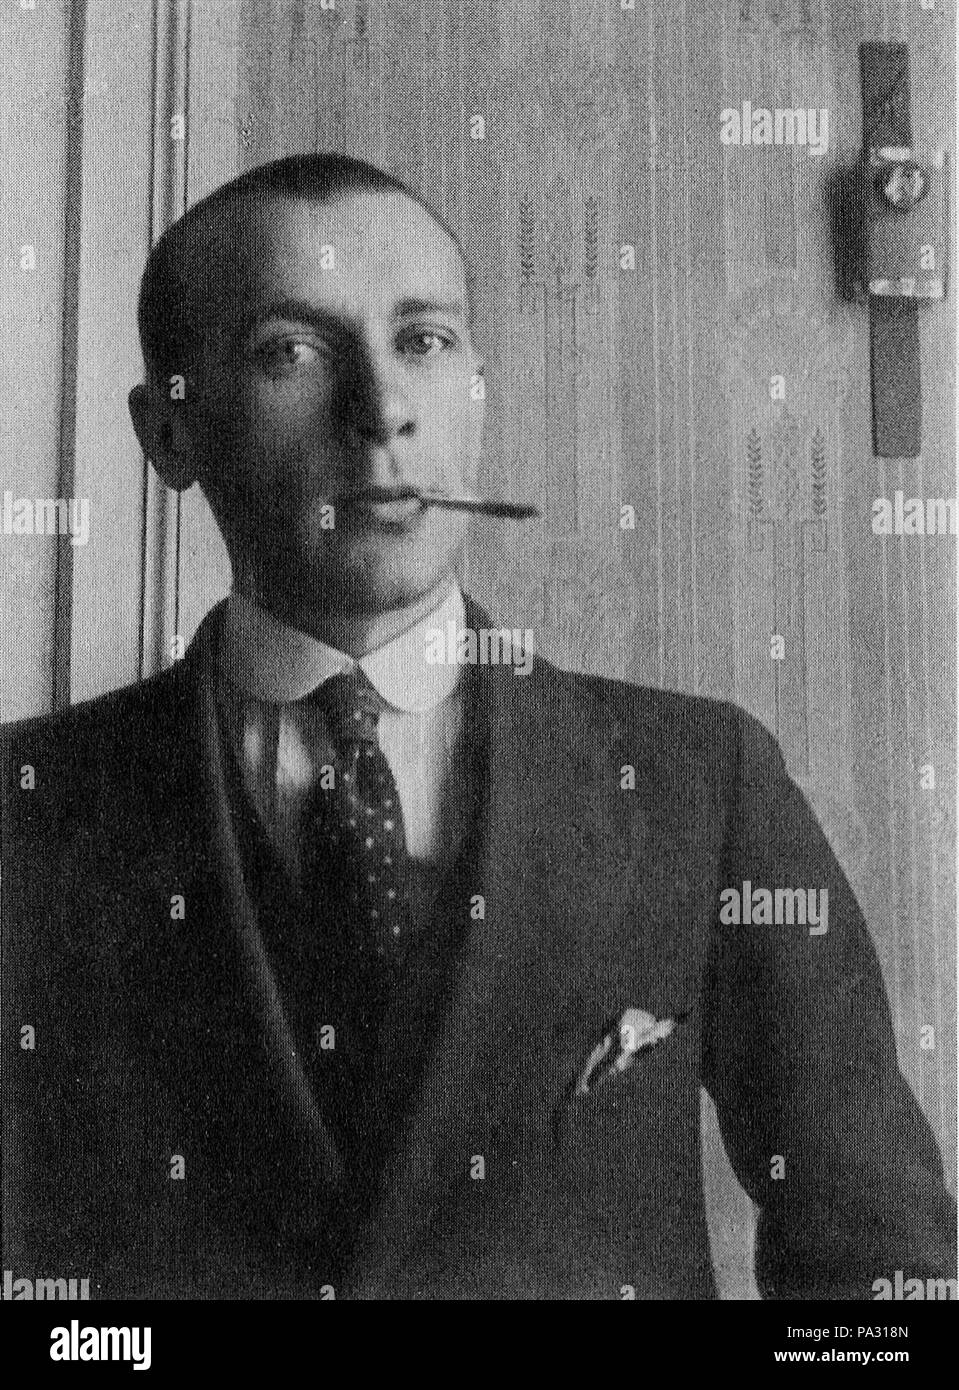 . English: Mikhail Bulgakov in the 1910s, during his university years. before 1916 (date he completed University studies) 257 Bulgakov1910s - Stock Image